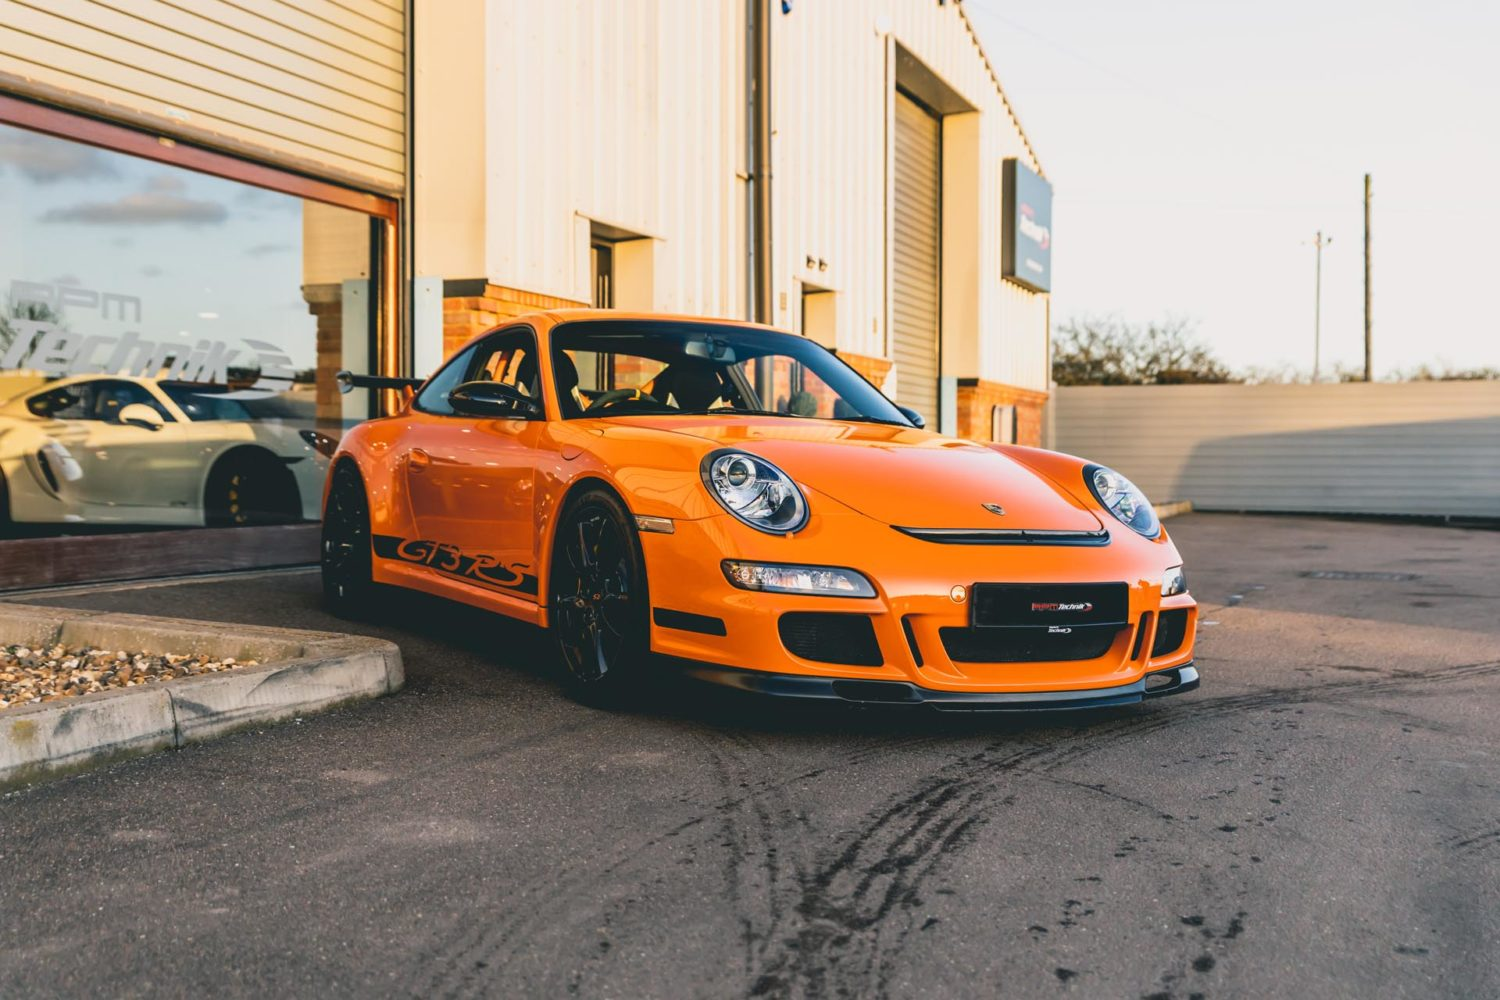 gt3rs outside RPM showroom